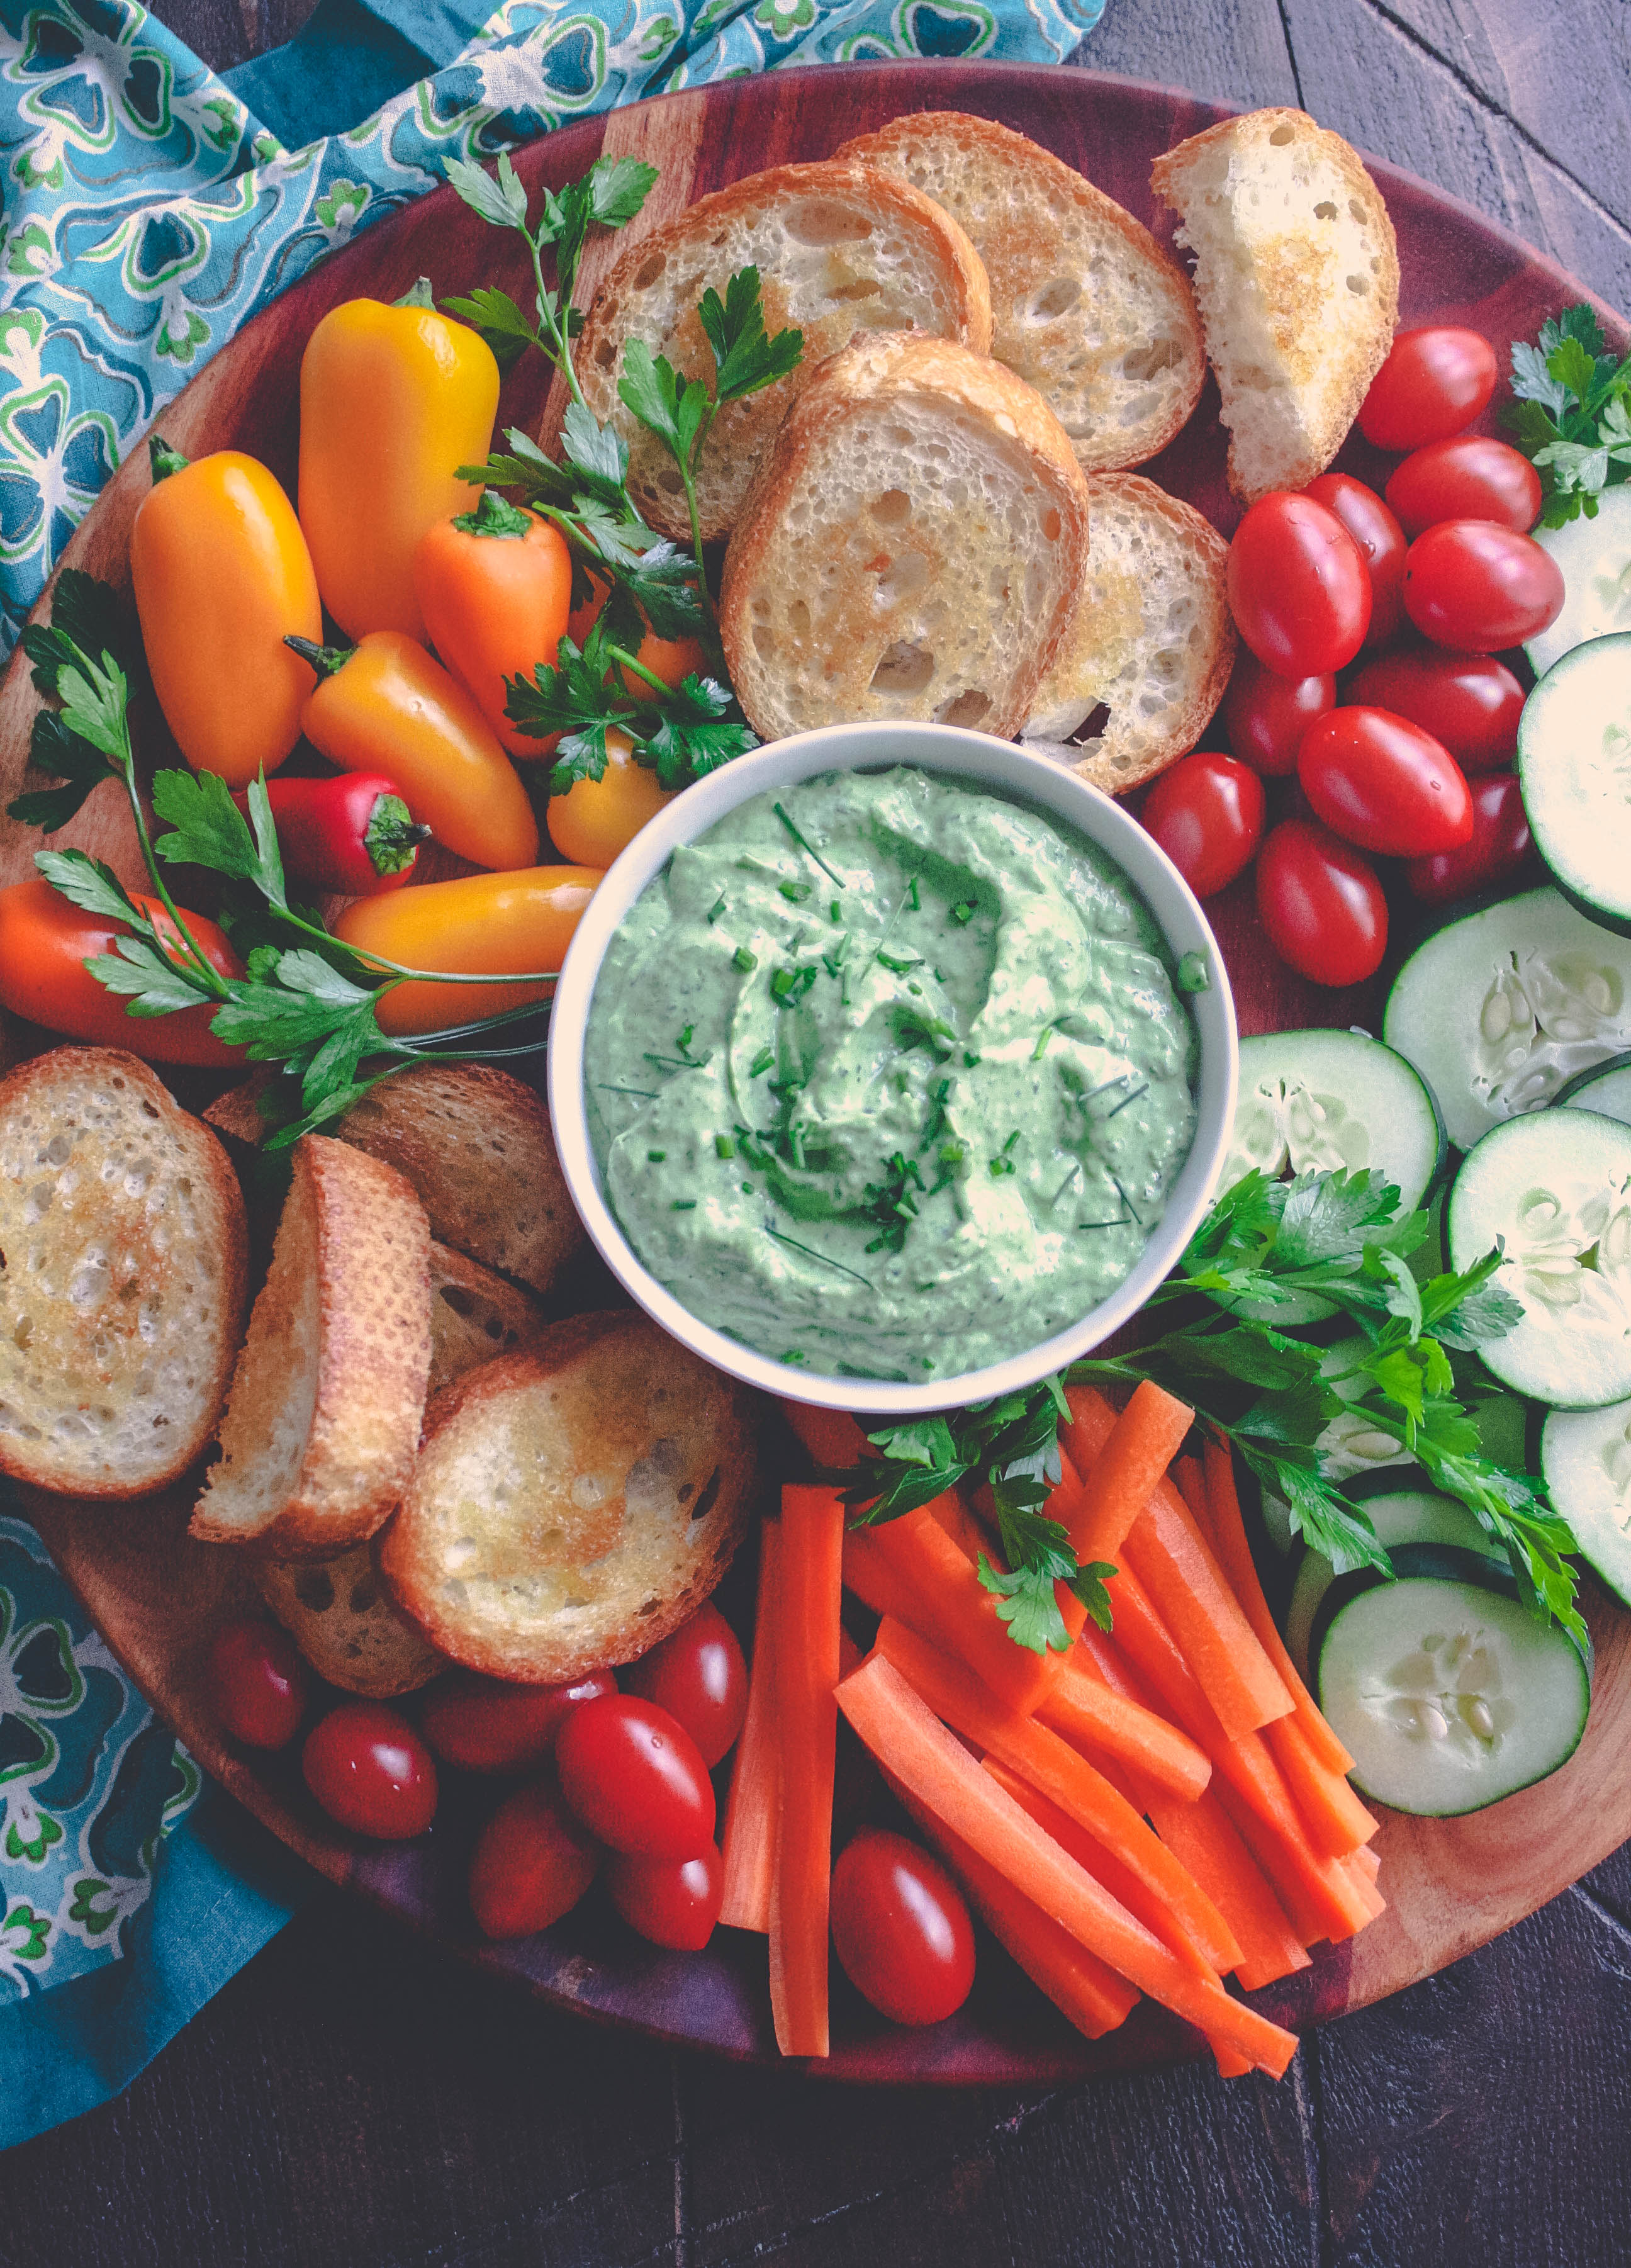 Creamy Green Goddess Dip is fresh and fun for an anytime snack. Creamy Green Goddess Dip makes a fun and festive snack.